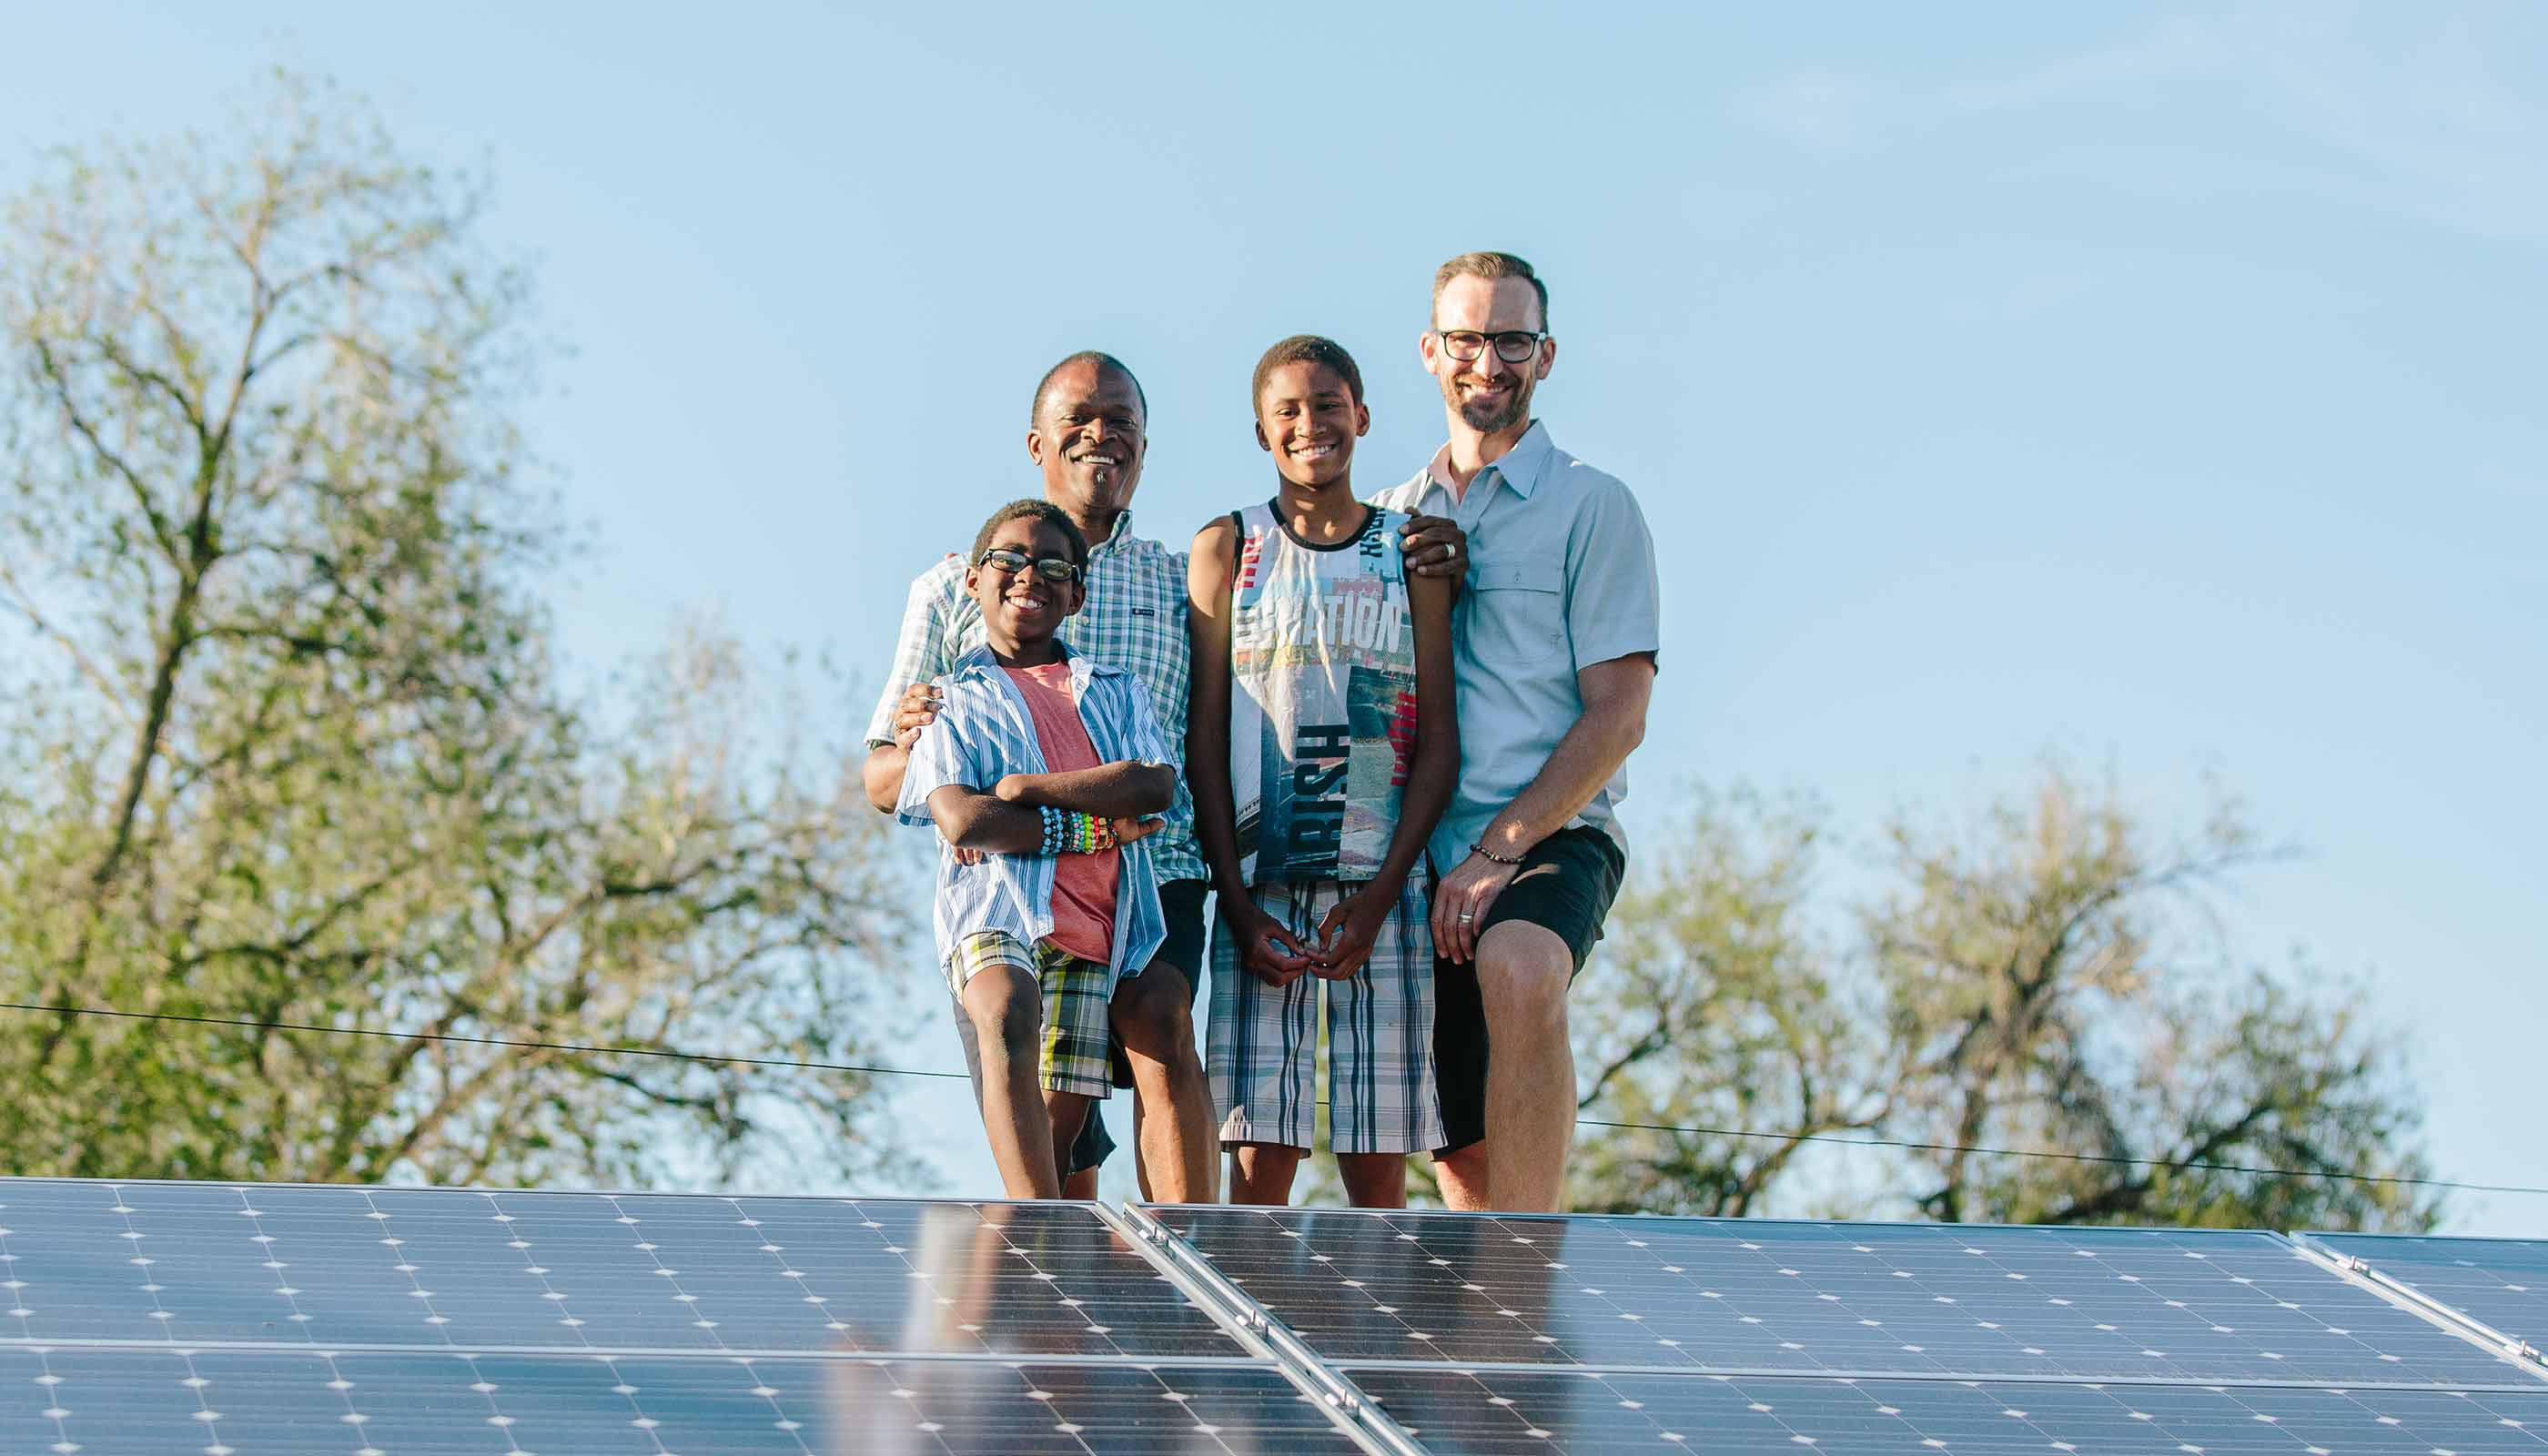 Clean Energy Credit Union: Solar finance with a conscience